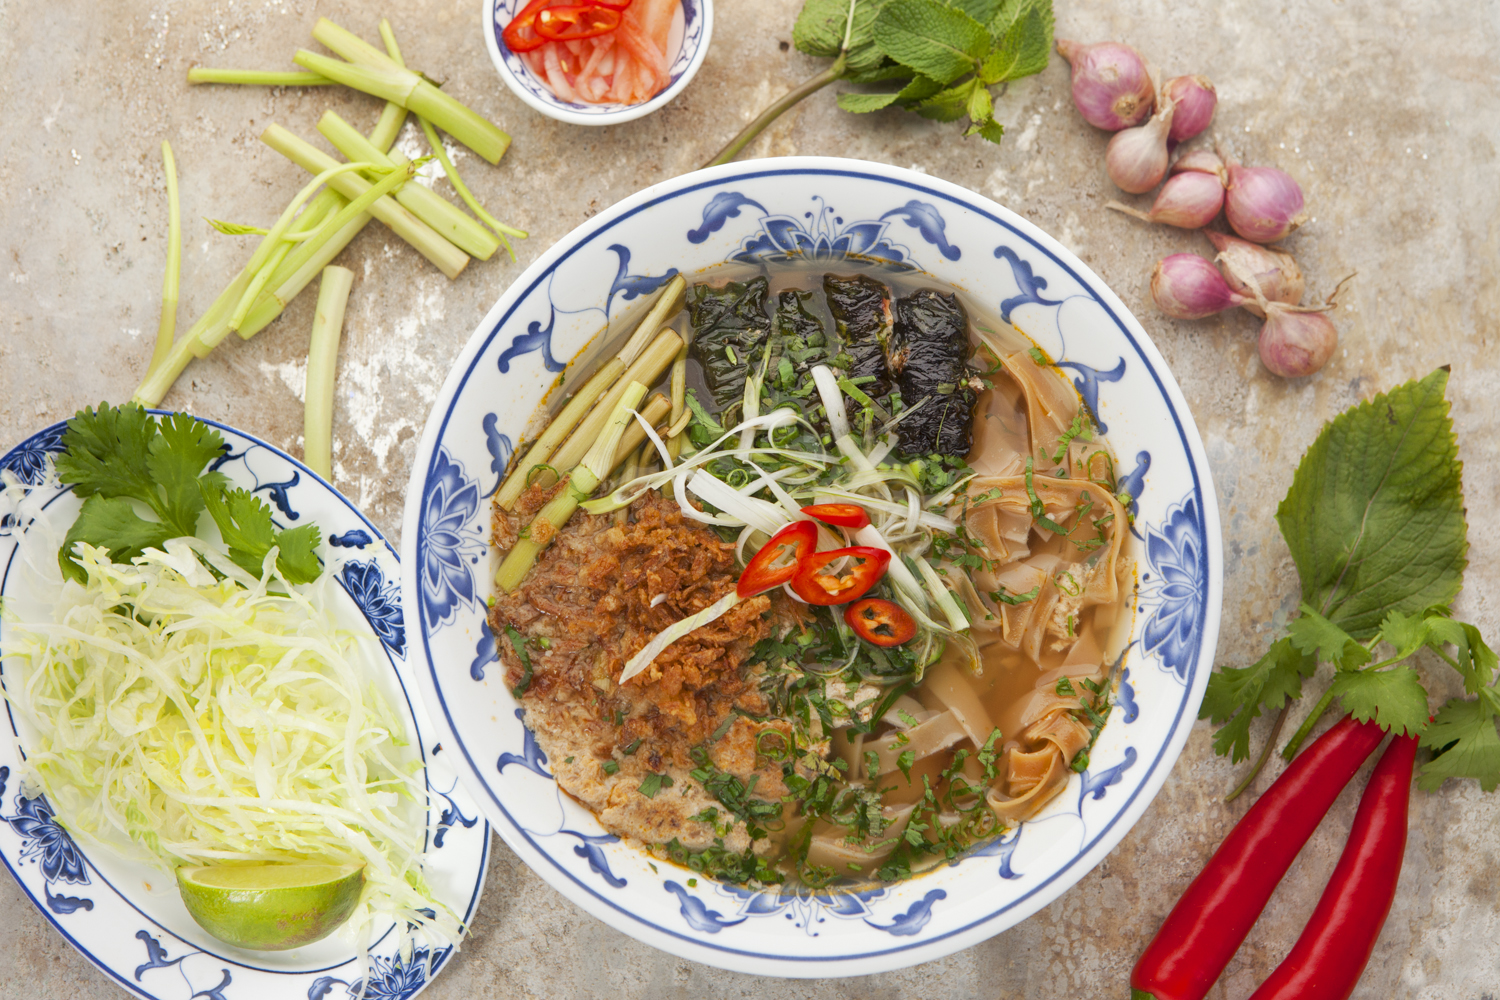 Where to Eat Vietnamese Food in London